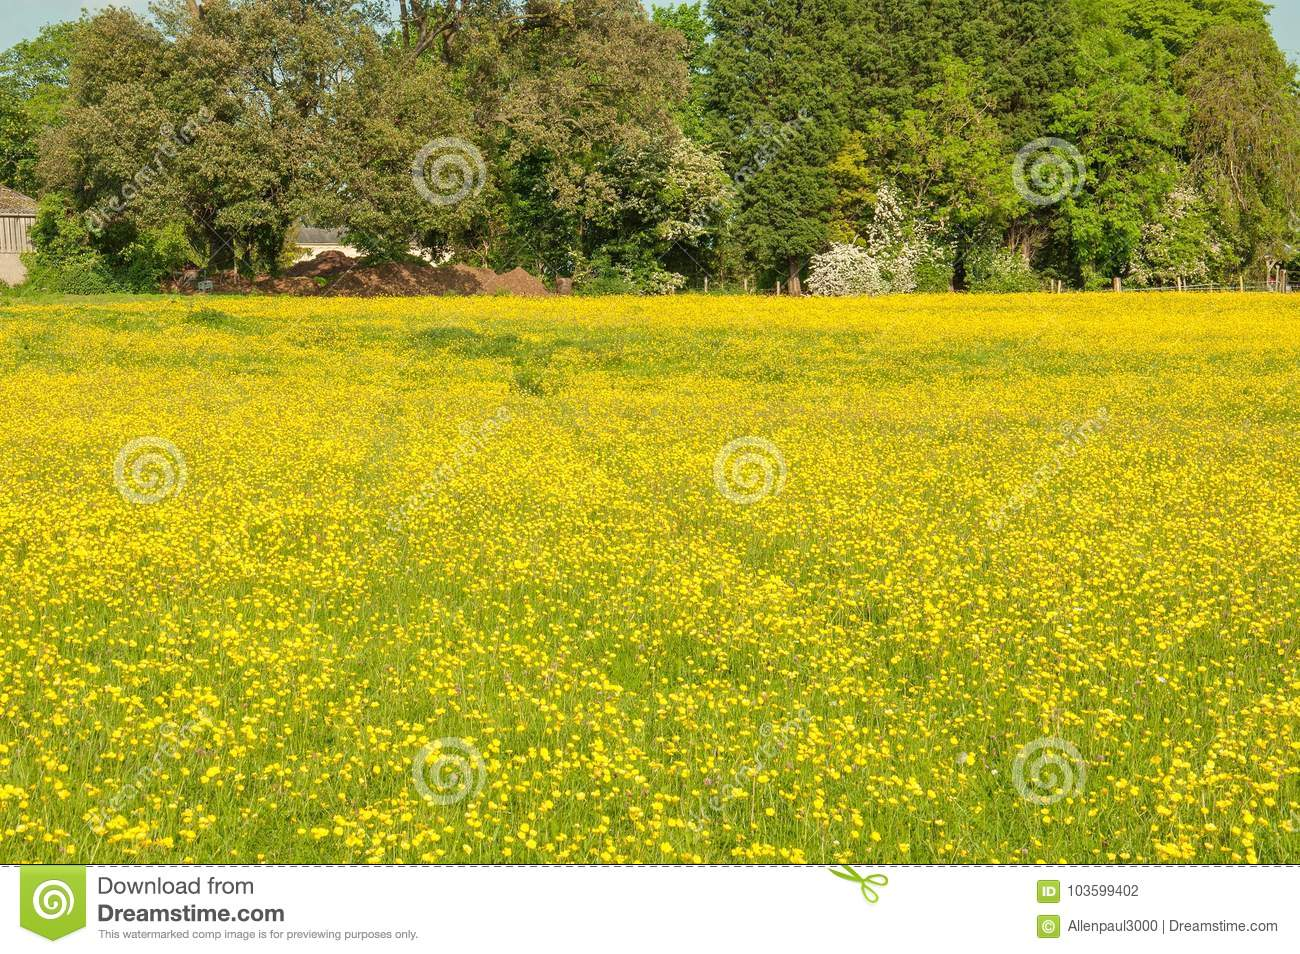 Yellow Buttercup Flowers In A Meadow In The English Summertime